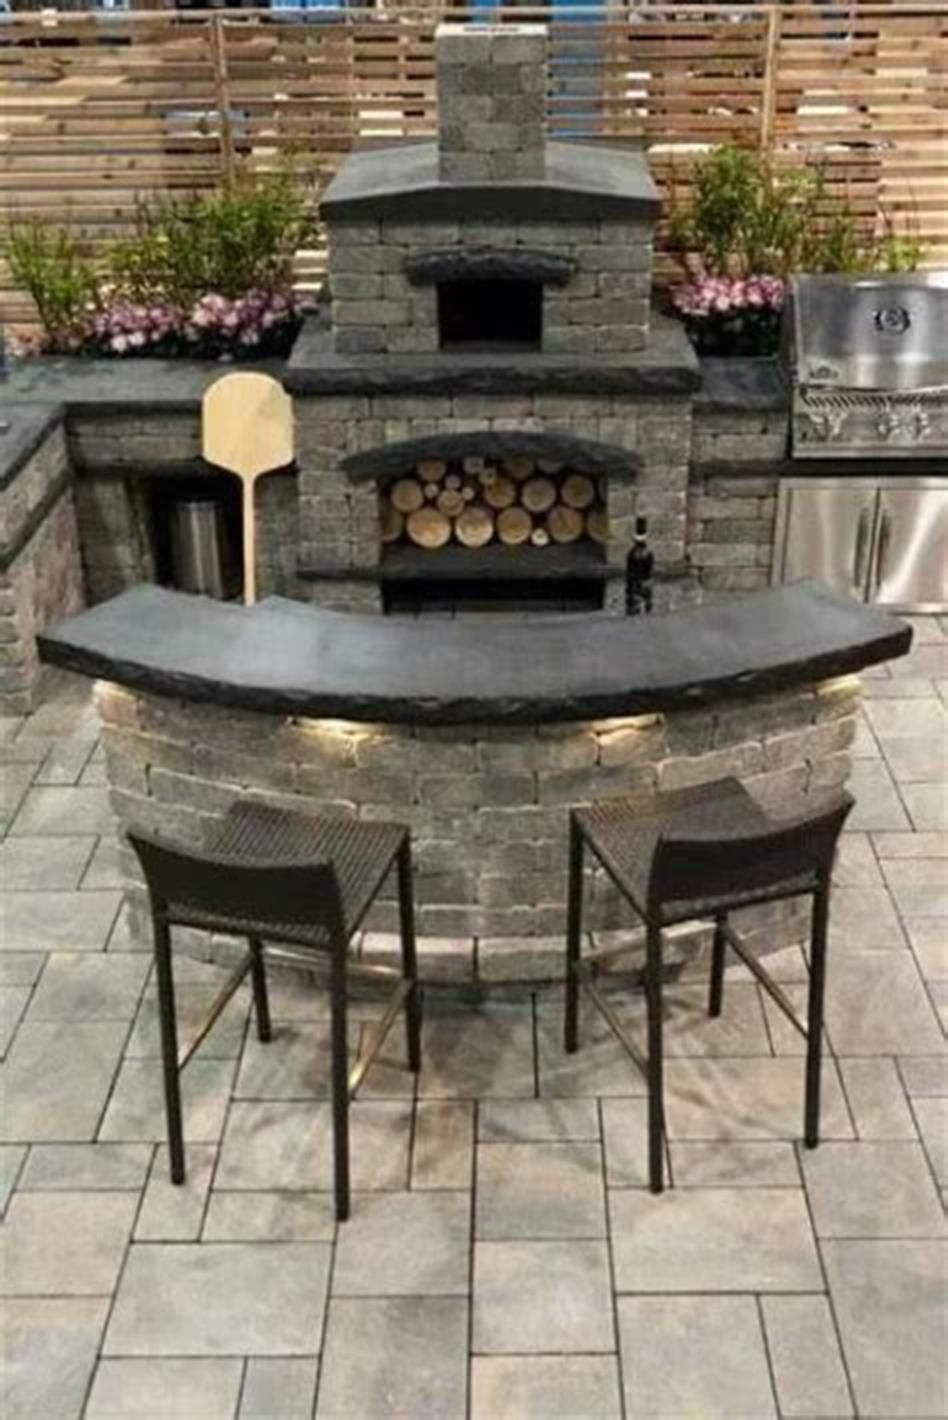 35 amazing small covered outdoor bbq ideas for 2019 backyard kitchen outdoor kitchen design on outdoor kitchen bbq id=48131